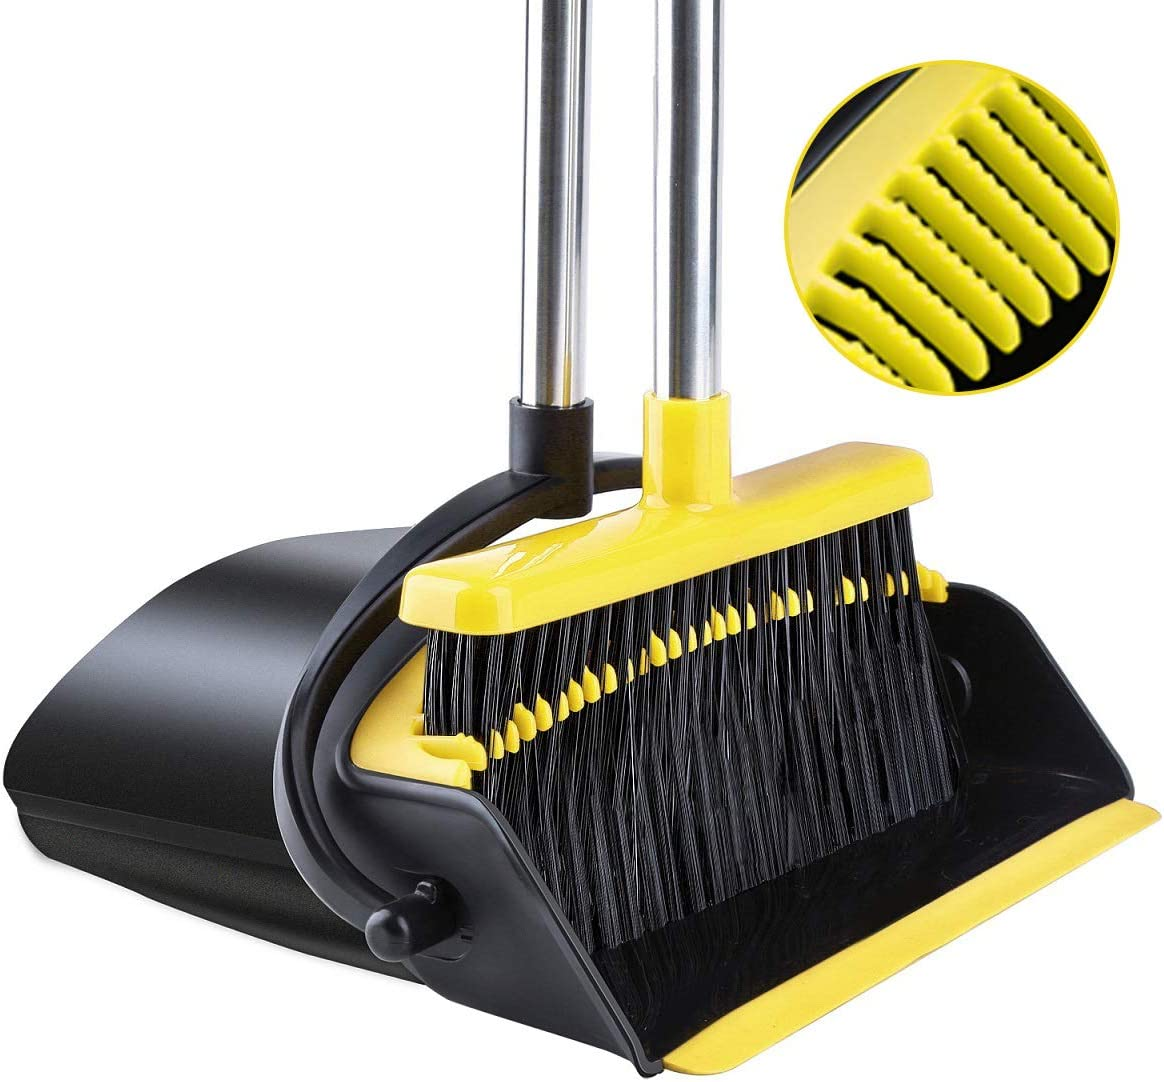 Broom and Dustpan Tiumso Dust pan Broom Set with Upgrade Combo and Sturdiest Extendable Long Handle,4 Layers Bristles,Upright Standing for Garden, Home, Office, Kitchen, Lobby(Black+Yellow)